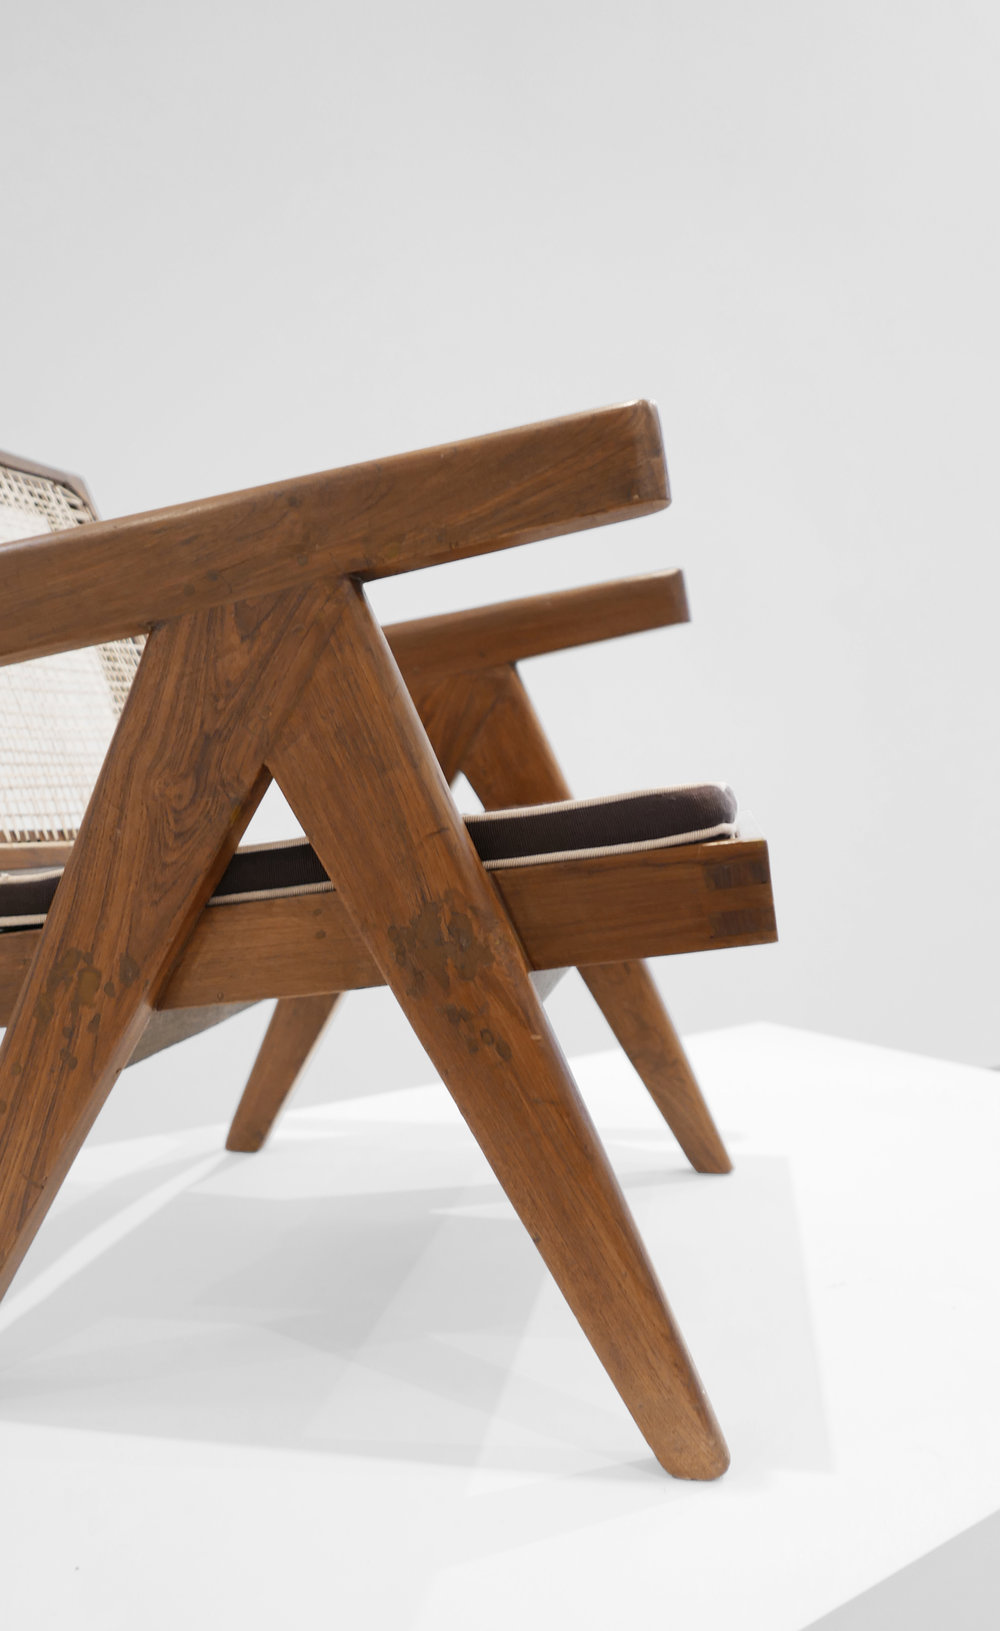 Pierre Jeanneret, Low lounge chair, model PJ-SI-29-A, c. 1955, teak, cane, 24.5H x 20.5W x 29.5D inches_5.jpg